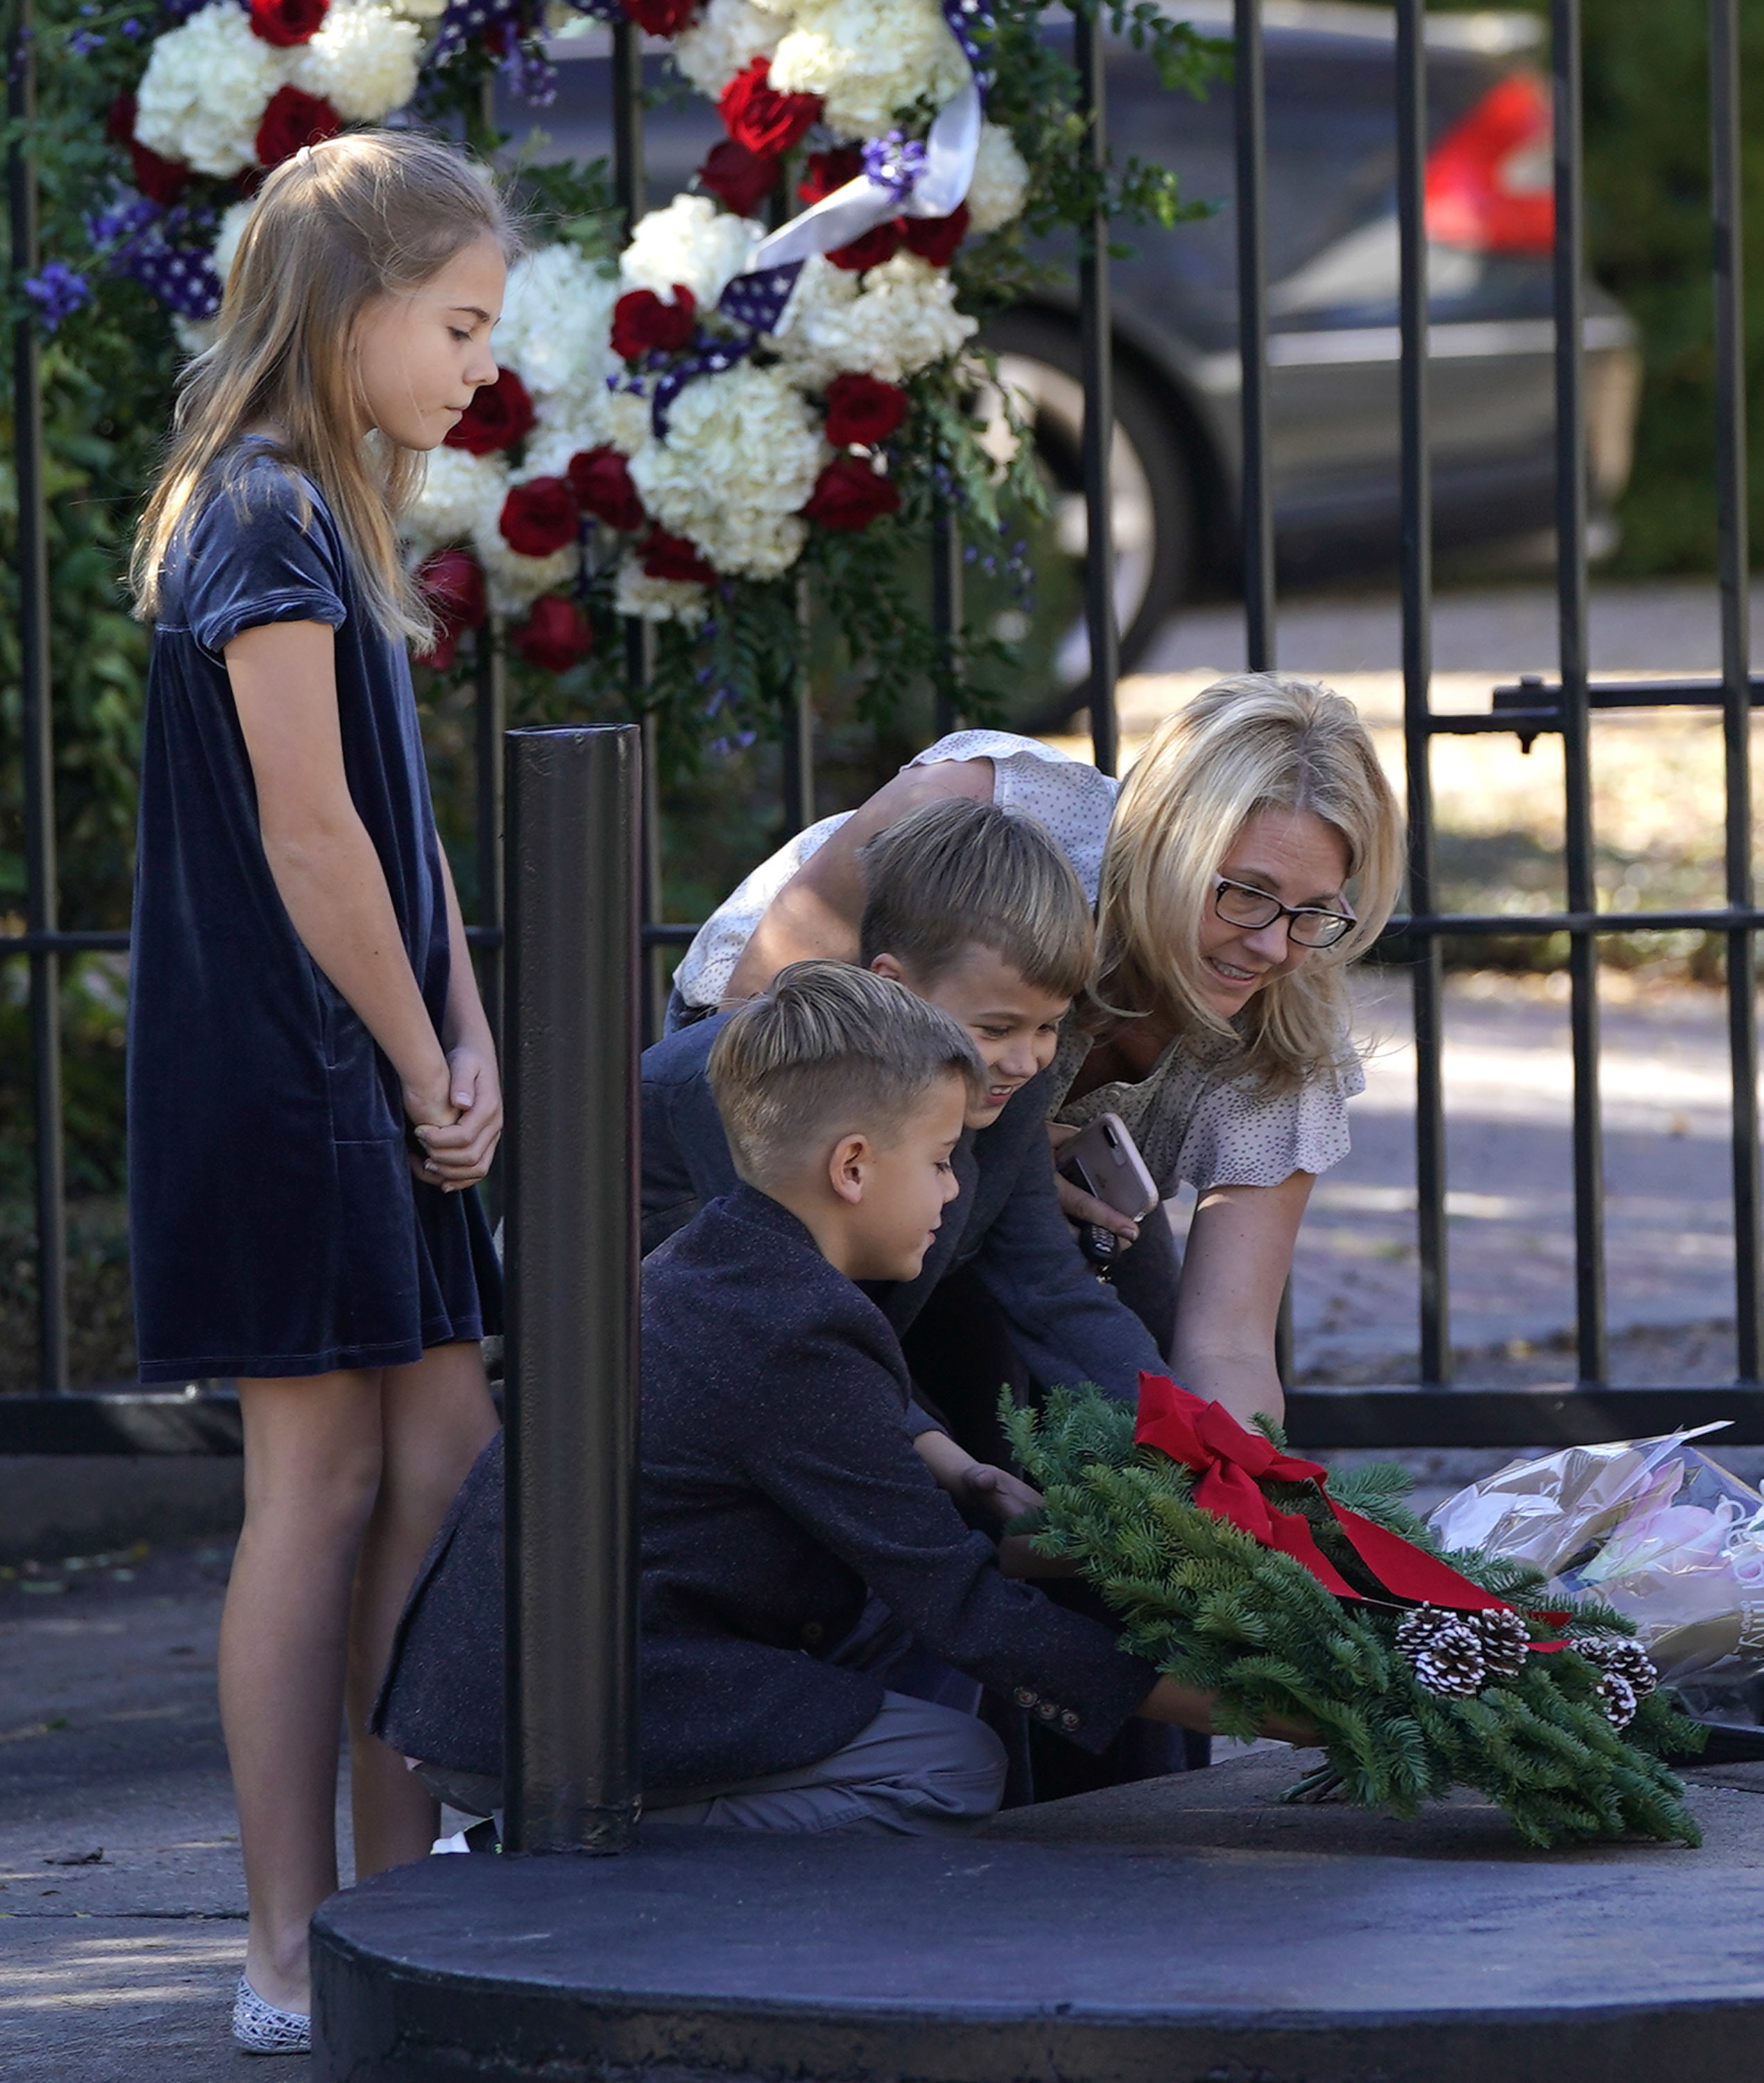 Tiffany Utterson, right, and her children, from left to right, Ella, 11, Ian, 10 and Owen, 8, place a wreath outside the gated community entrance to the home of George H.W. Bush Sunday, Dec. 2, in Houston. (AP Photo/David J. Phillip)